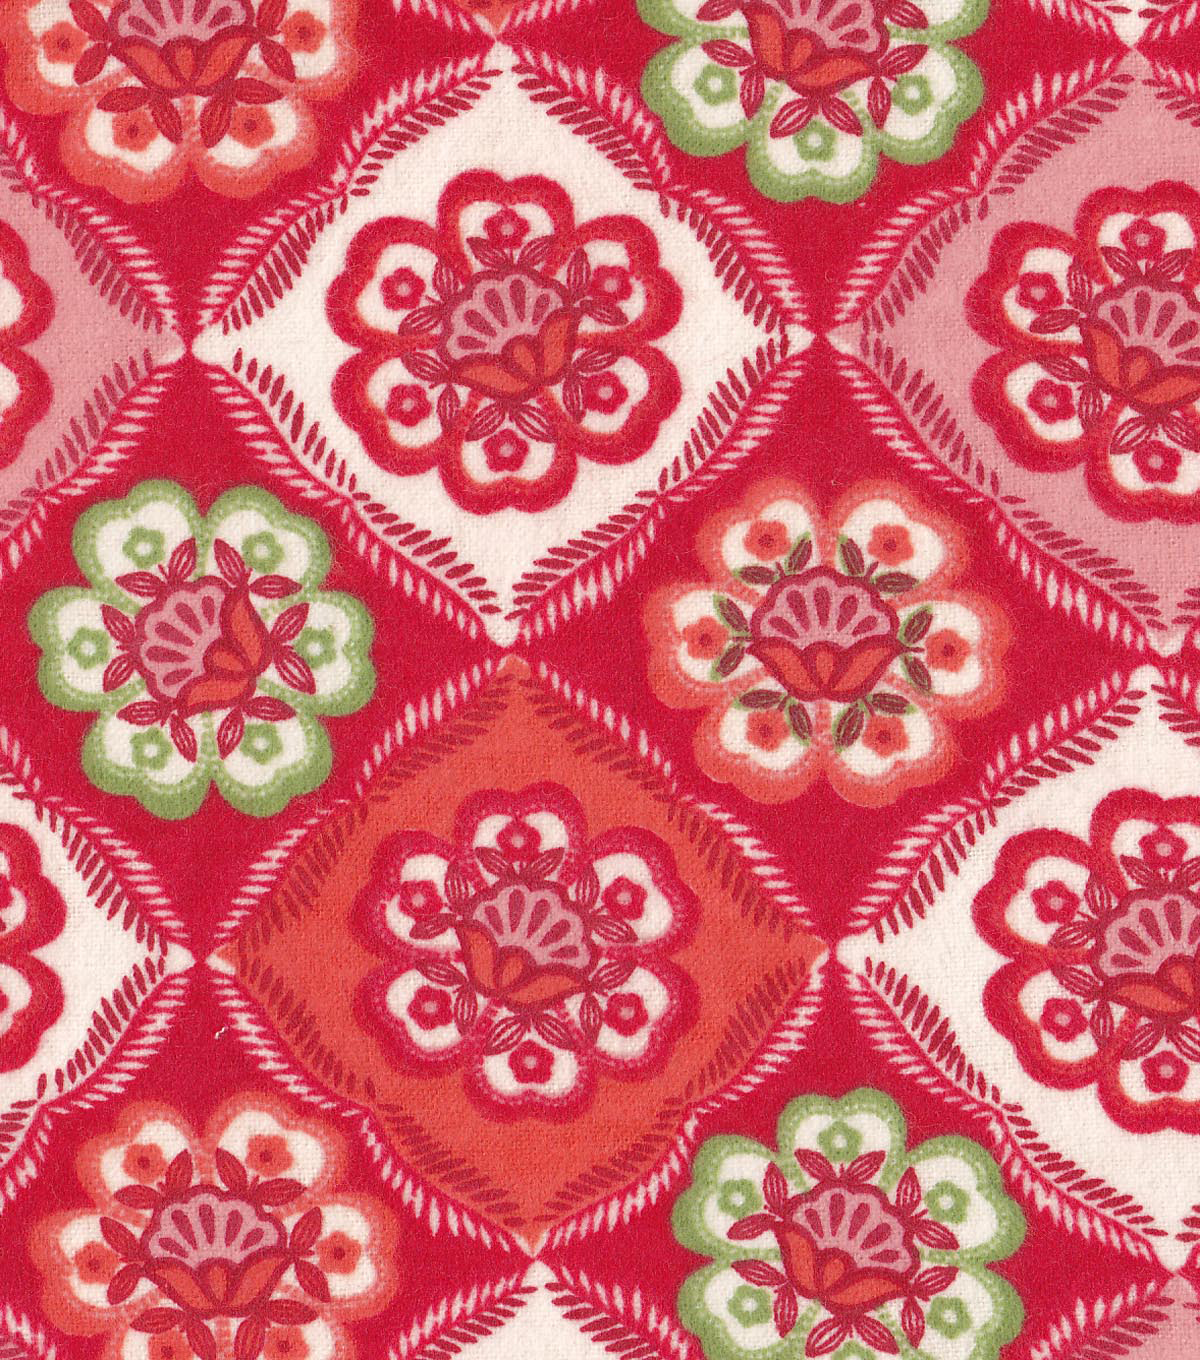 Snuggle Flannel Fabric -Red Floral